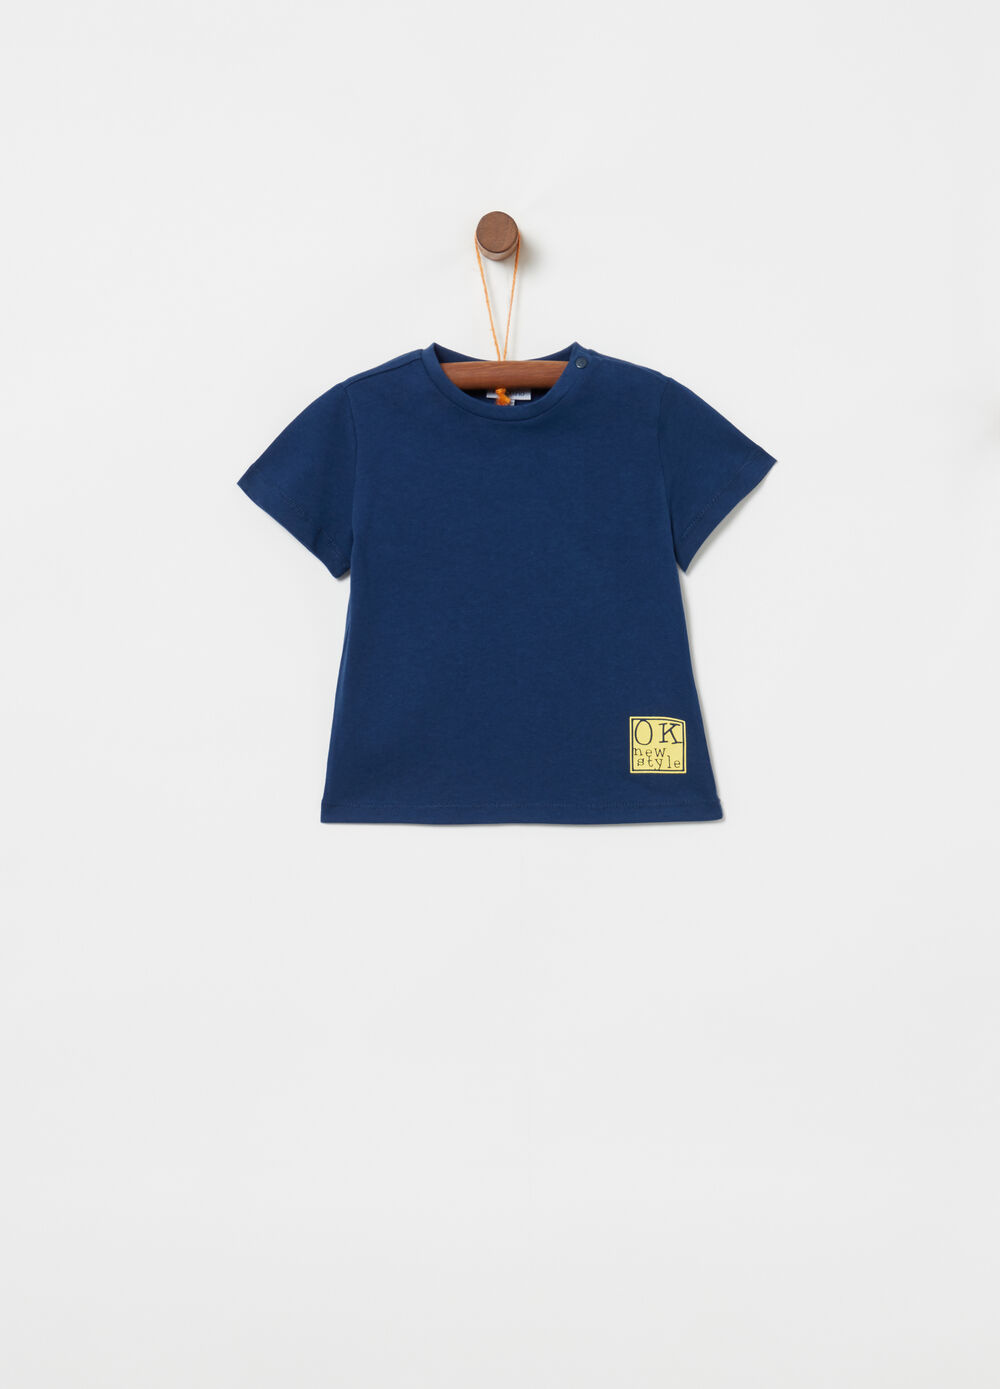 100% cotton T-shirt with button and print